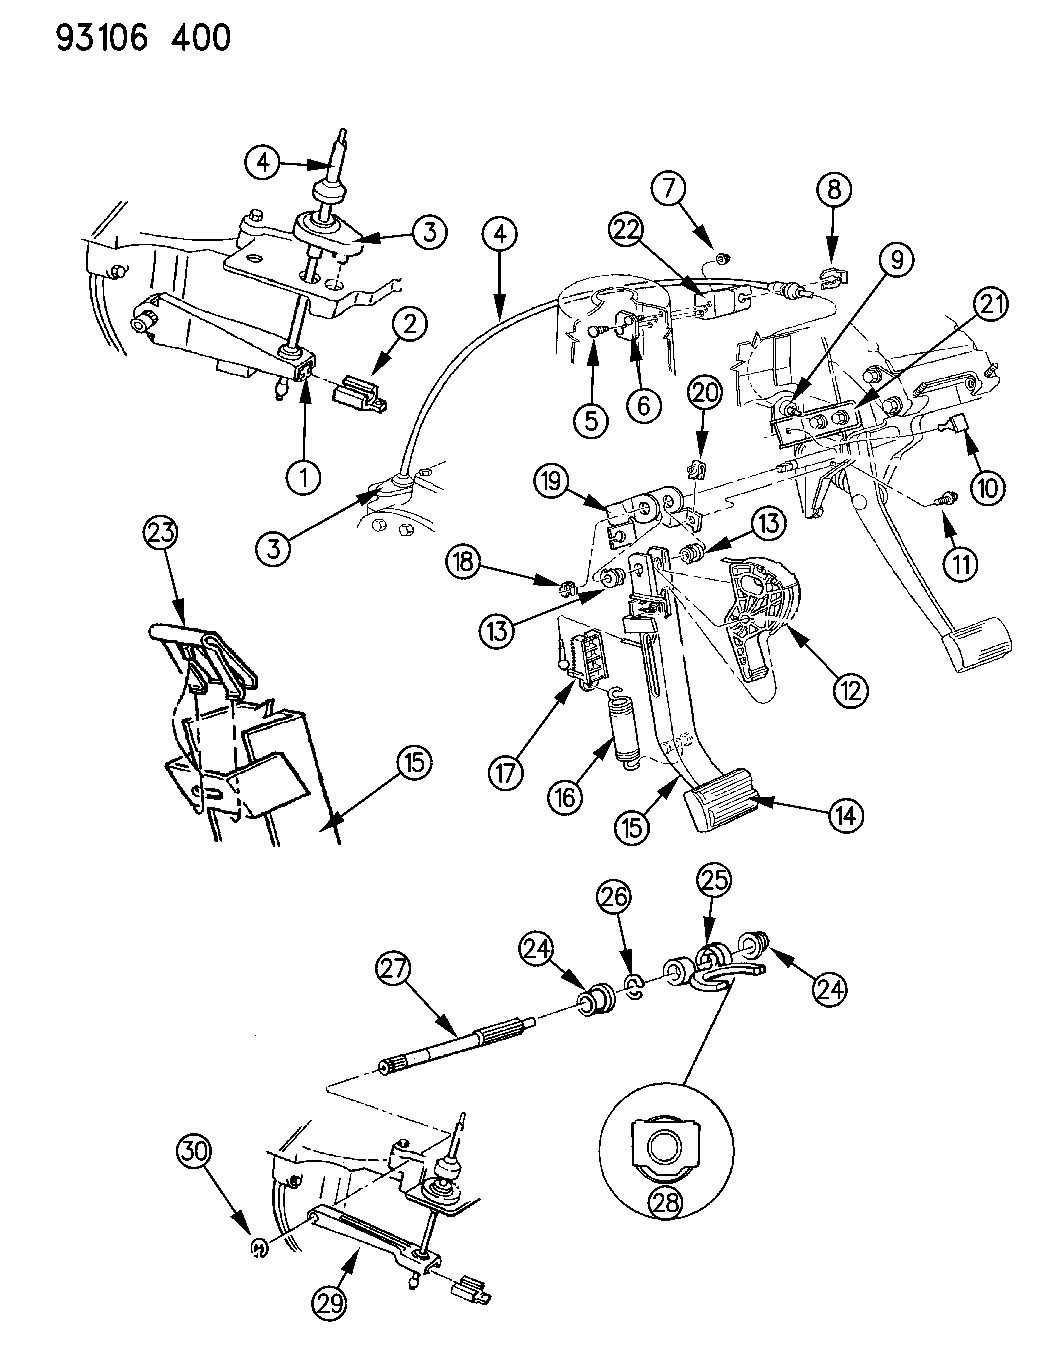 Service manual [2002 Land Rover Discovery Clutch Pedal